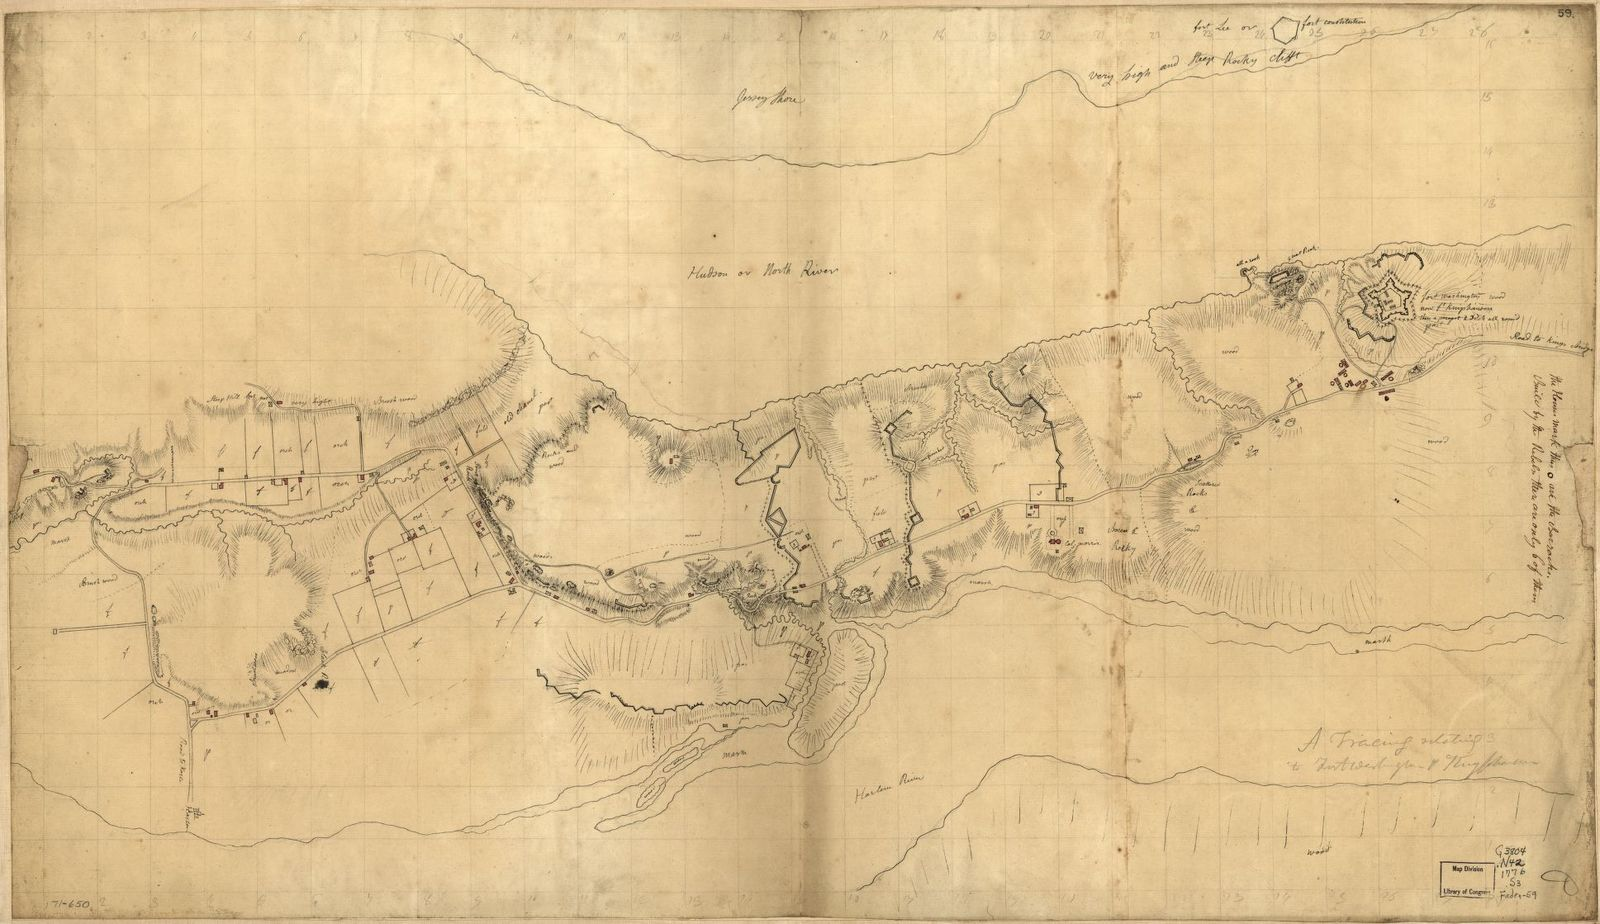 A tracing relating to Fort Washington or Knyphausen.